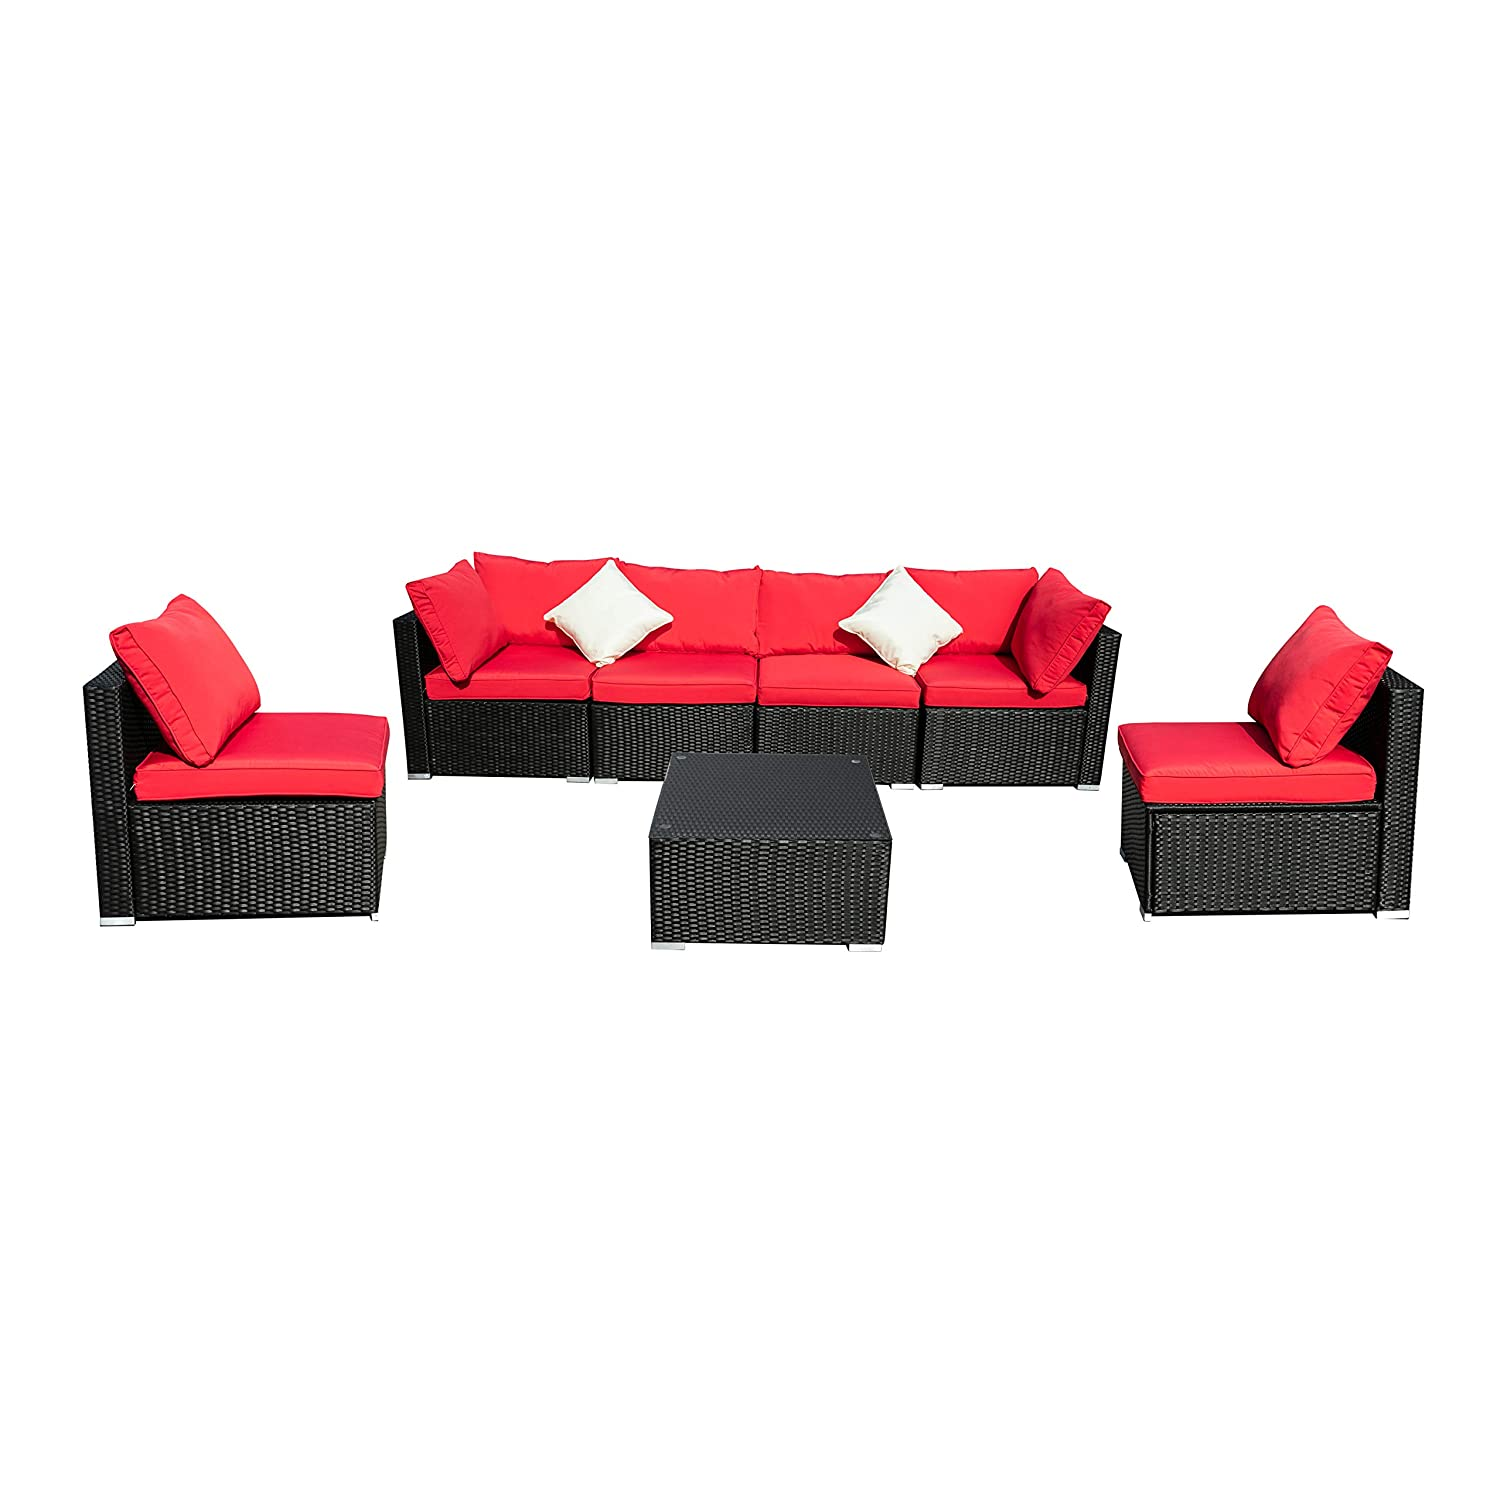 Tremendous Amazon Com Koolwoom Outdoor Patio Sectional Wicker Sofa Complete Home Design Collection Papxelindsey Bellcom